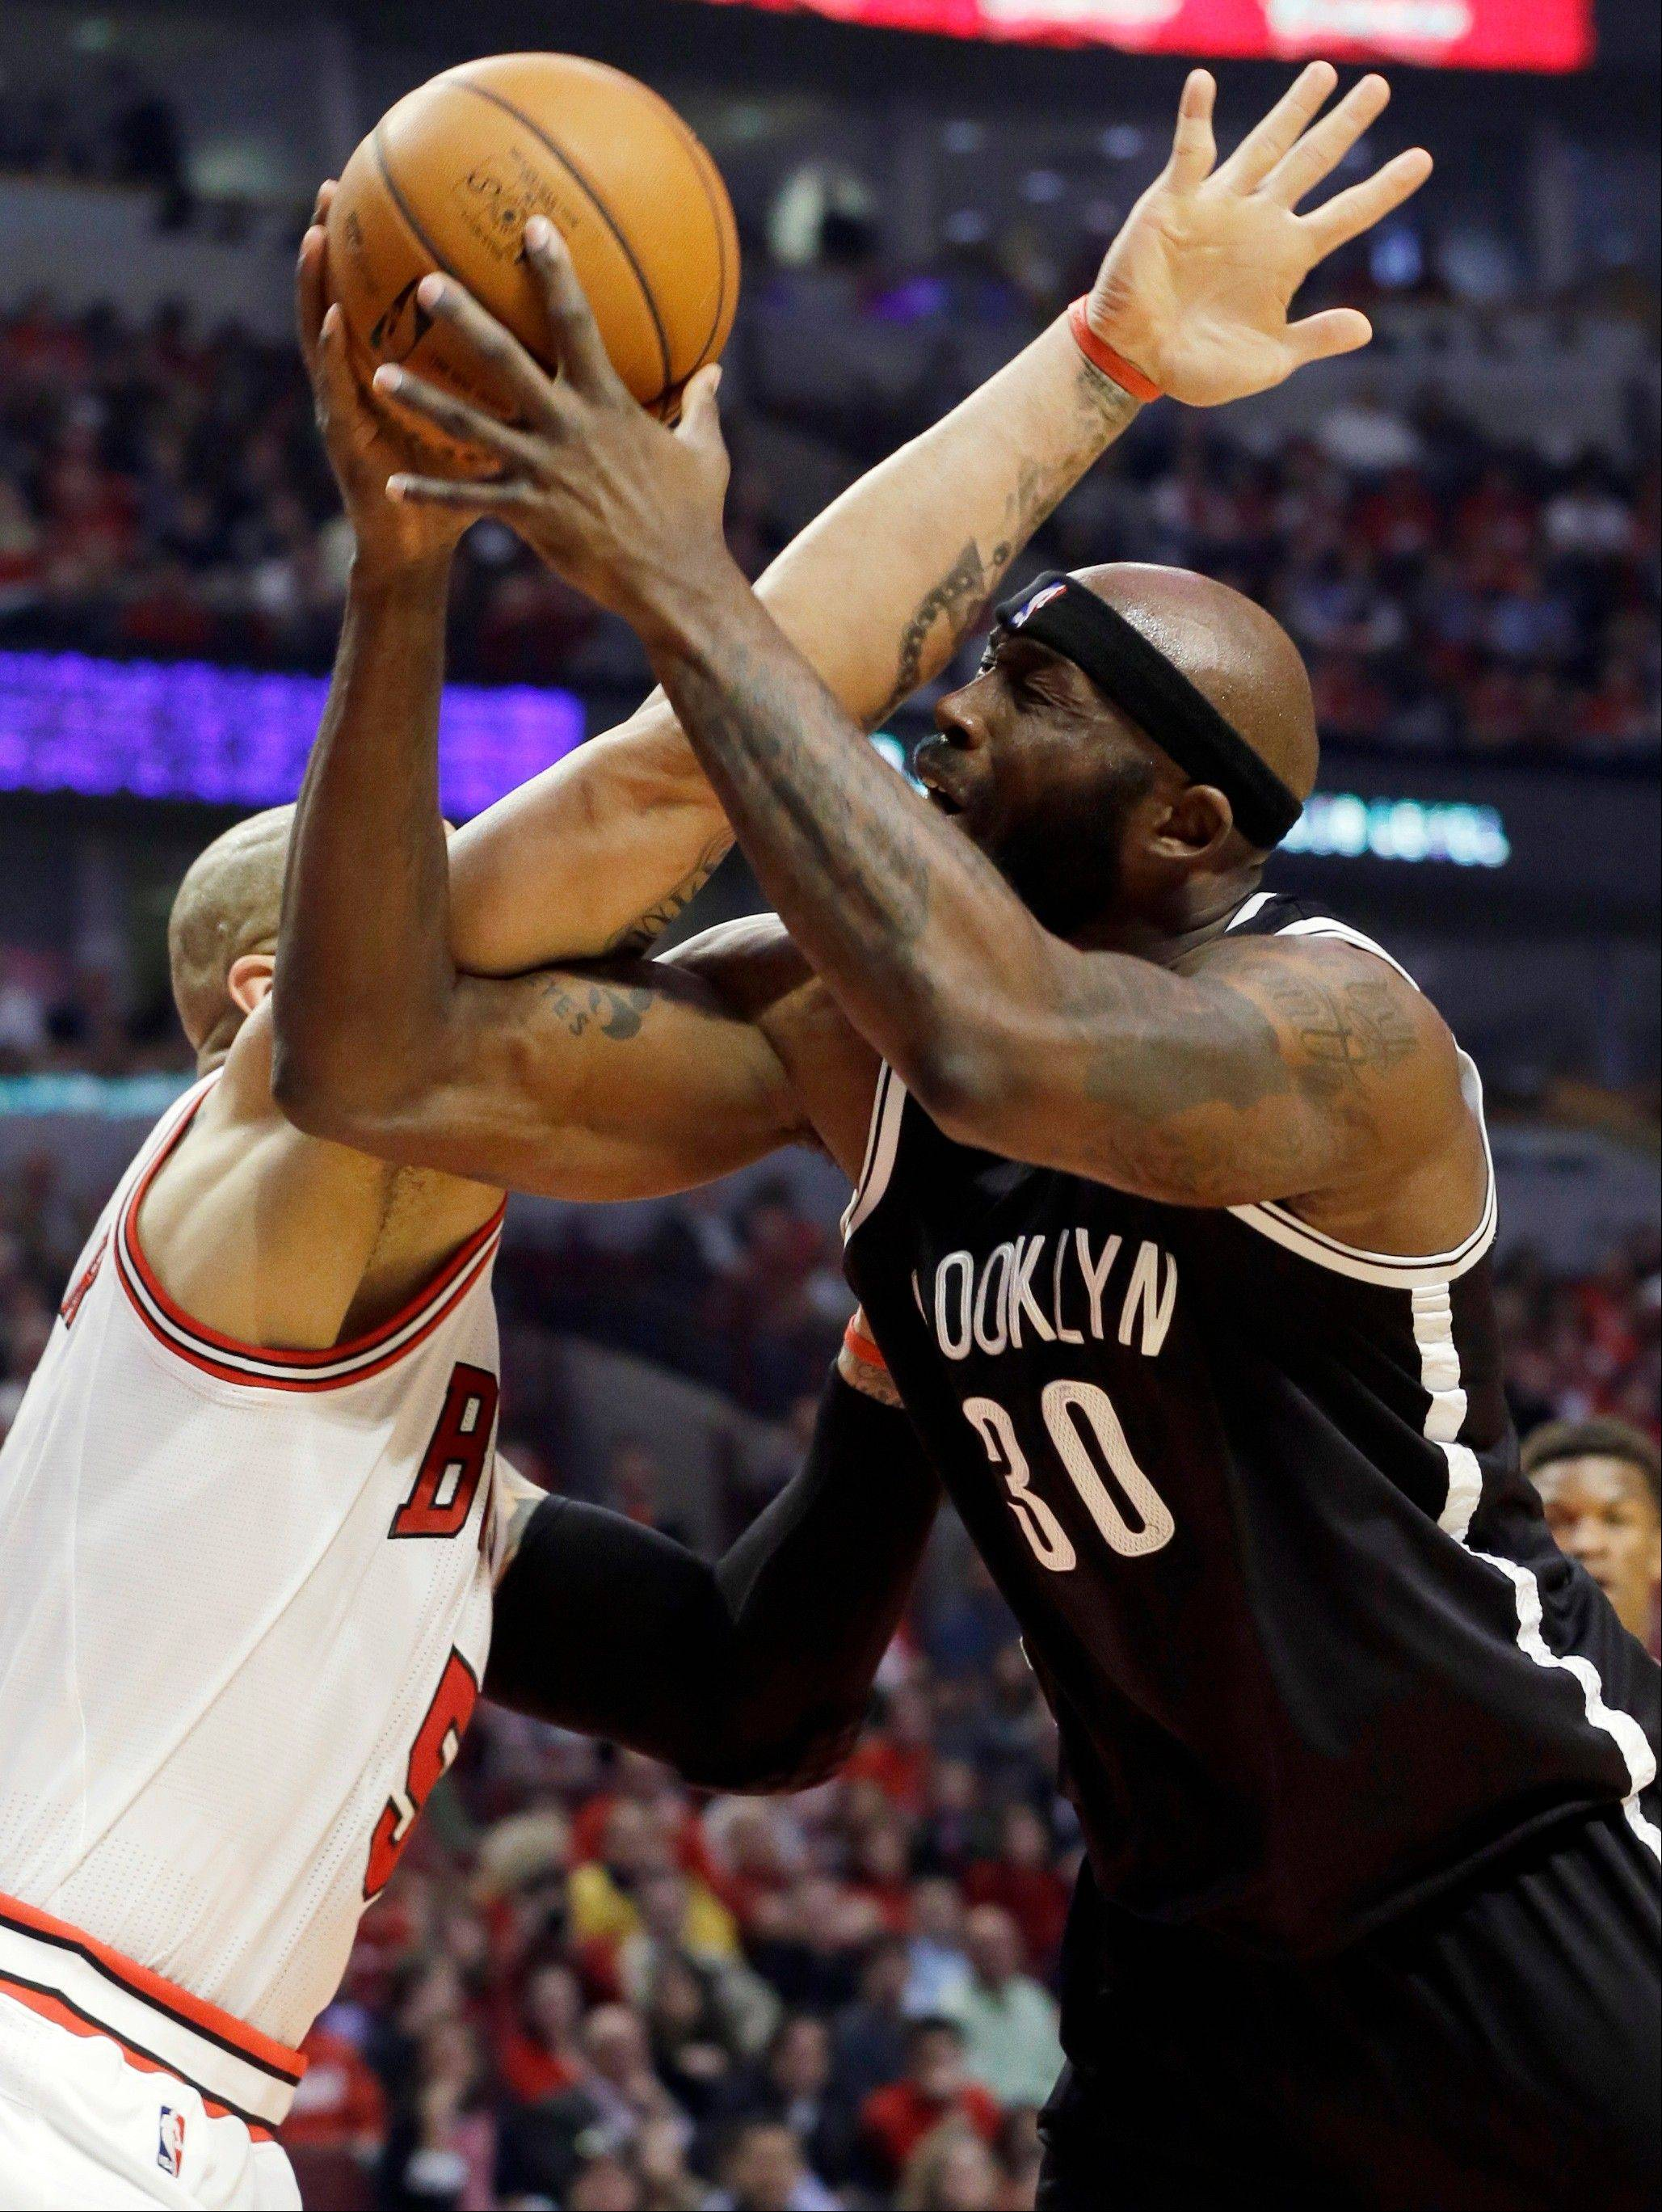 Brooklyn Nets forward Reggie Evans, right, shoots against Chicago Bulls forward Carlos Boozer during the first half in Game 6 of their first-round NBA basketball playoff series in Chicago, Thursday, May 2, 2013.